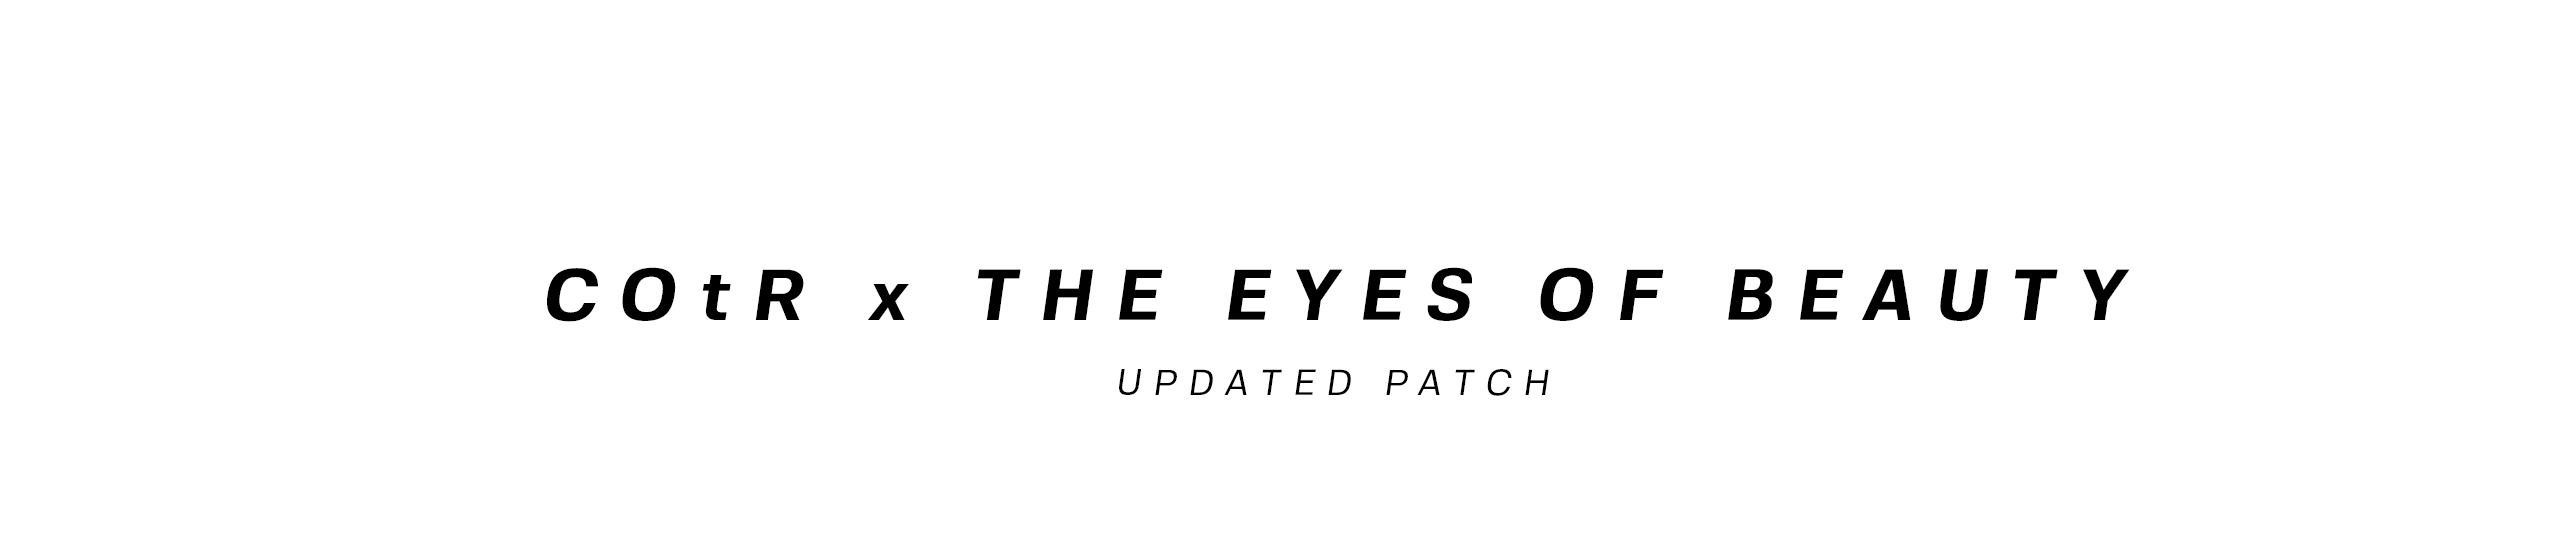 COtR x The Eyes of Beauty-更新补丁